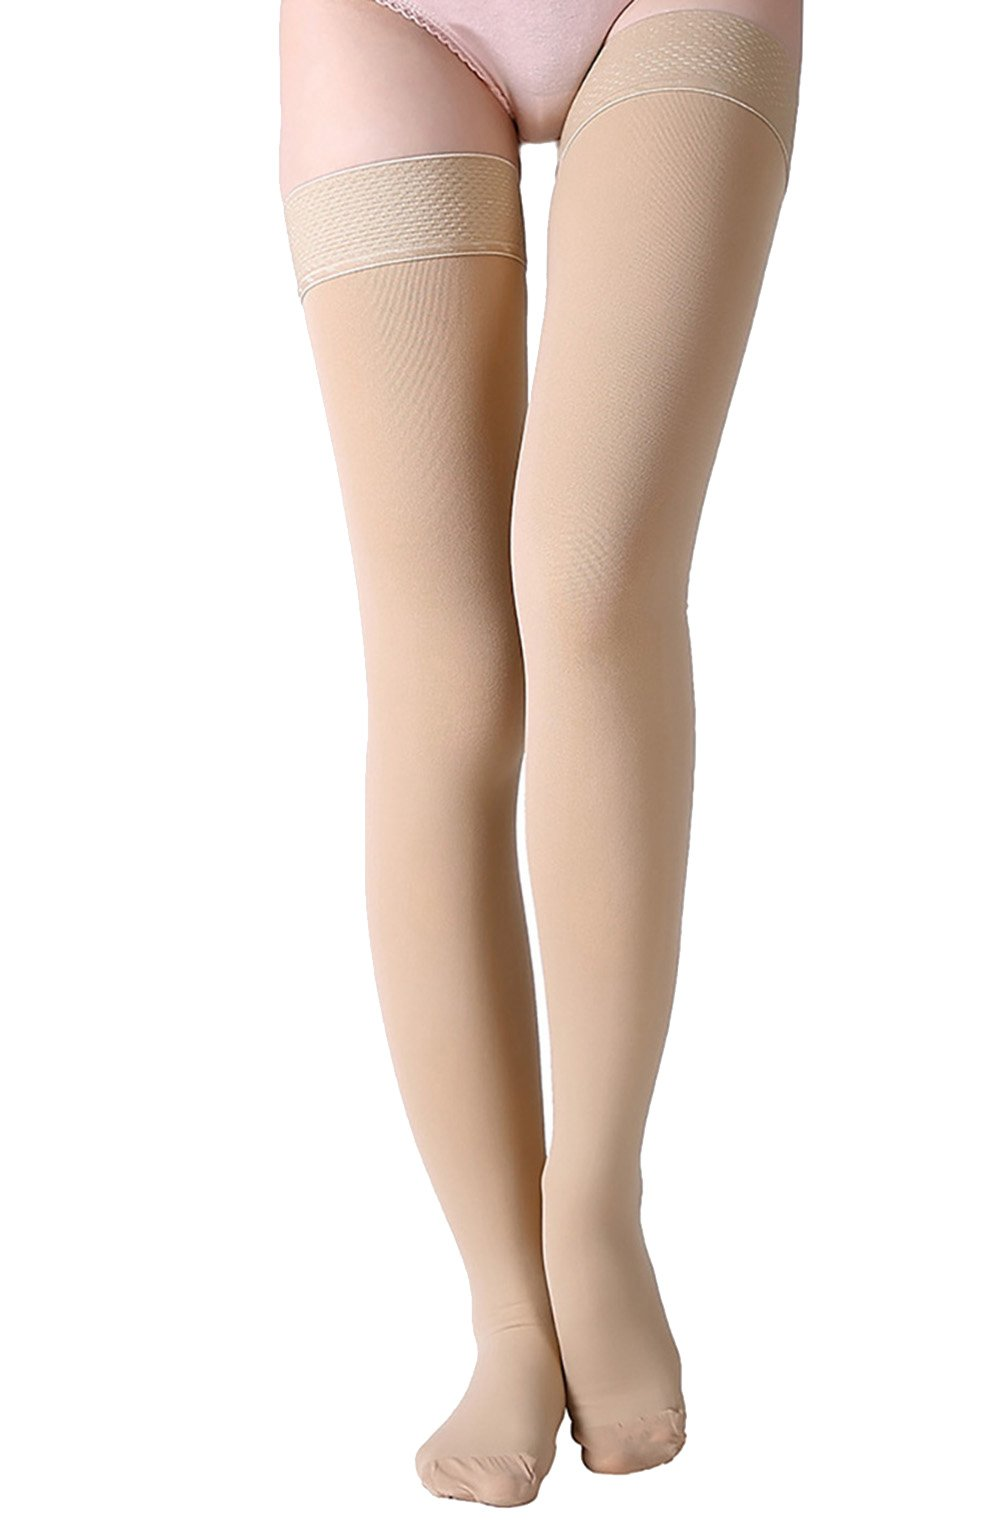 Thigh High Compression Stockings, Closed Toe, Firm Support 20-30 mmHg Gradient Compression Socks with Silicone Band, Opaque, Best for Treatment Swelling, Varicose Veins, Edema, Pregnancy, Beige M by MGANG (Image #7)